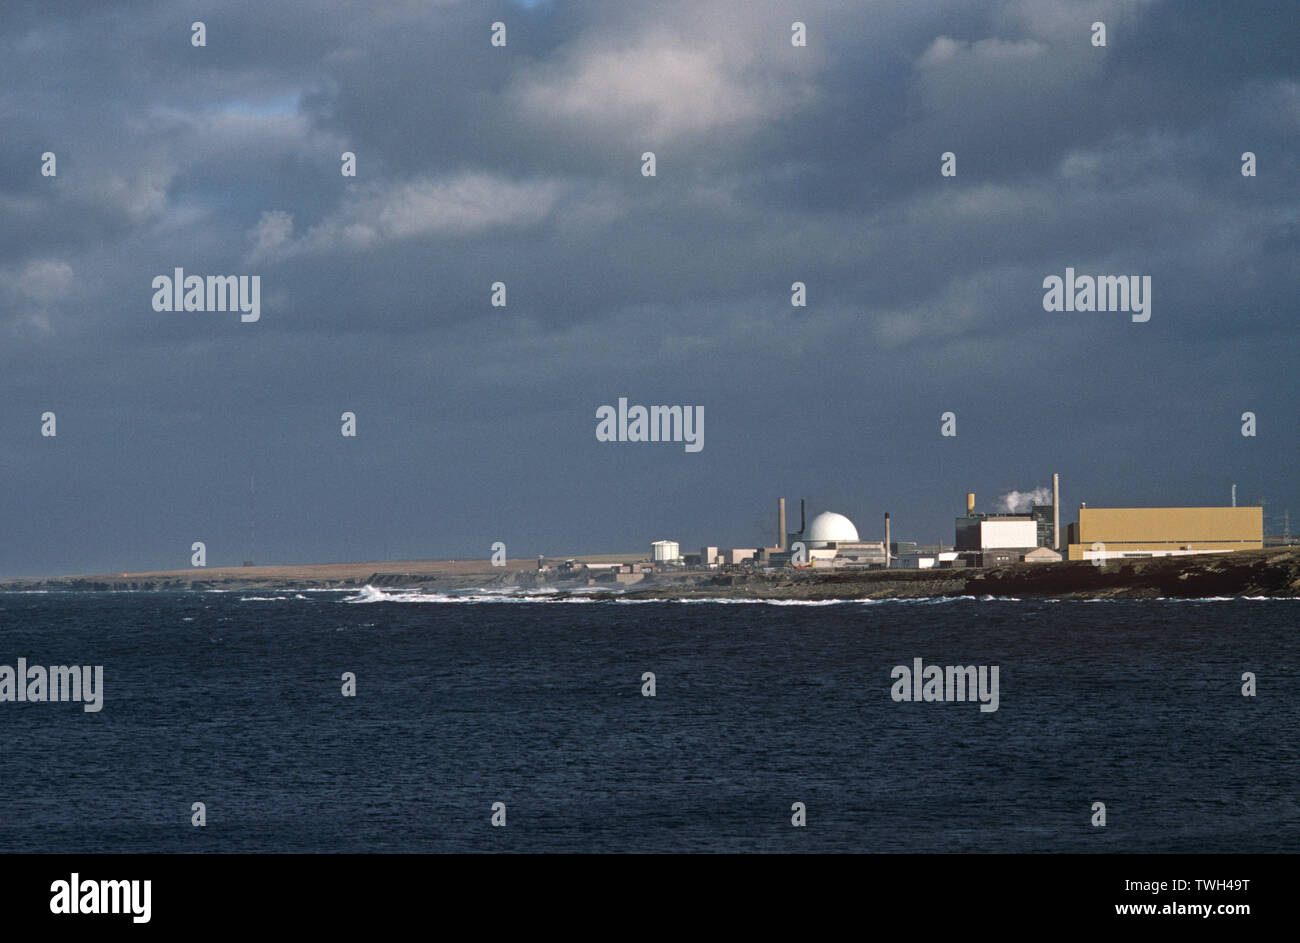 Dounreay nuclear Power station under the UKAEA, UNITED KINGDOM ATOMIC ENERGY AUTHORITY. Dounreay was decommissioned in 1994, - Stock Image